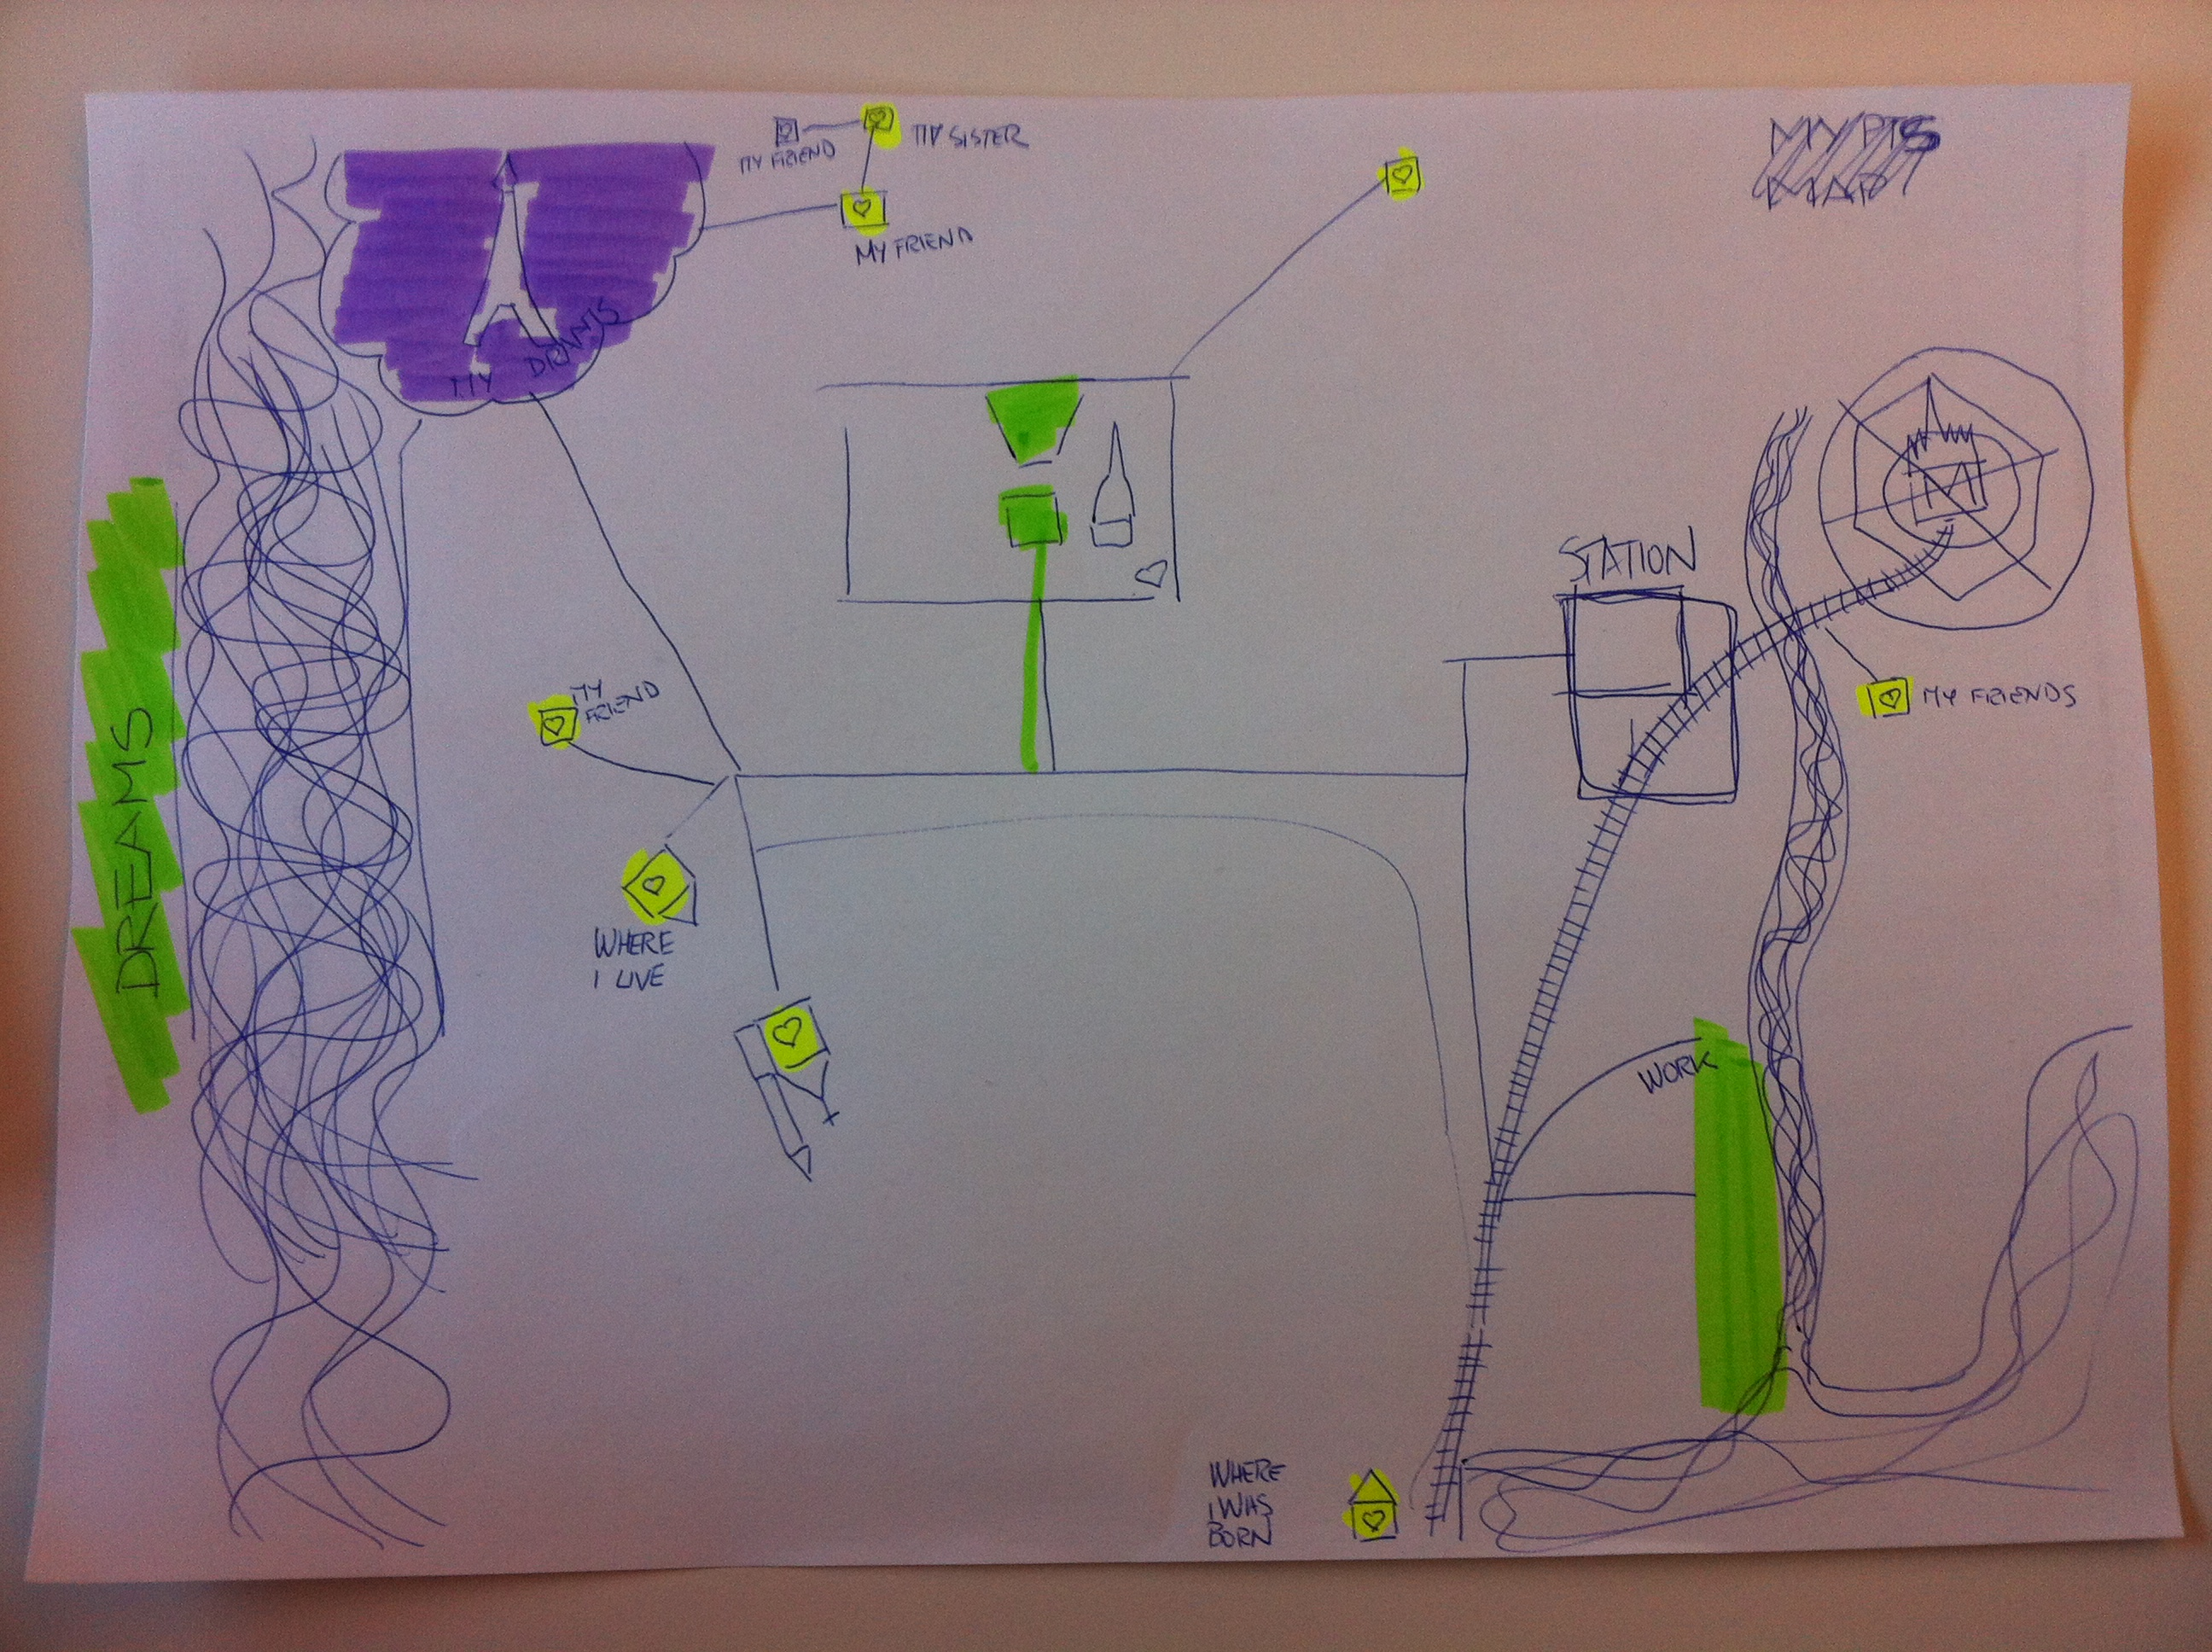 Memories /place/time/sense/ Mapped - image 3 - student project